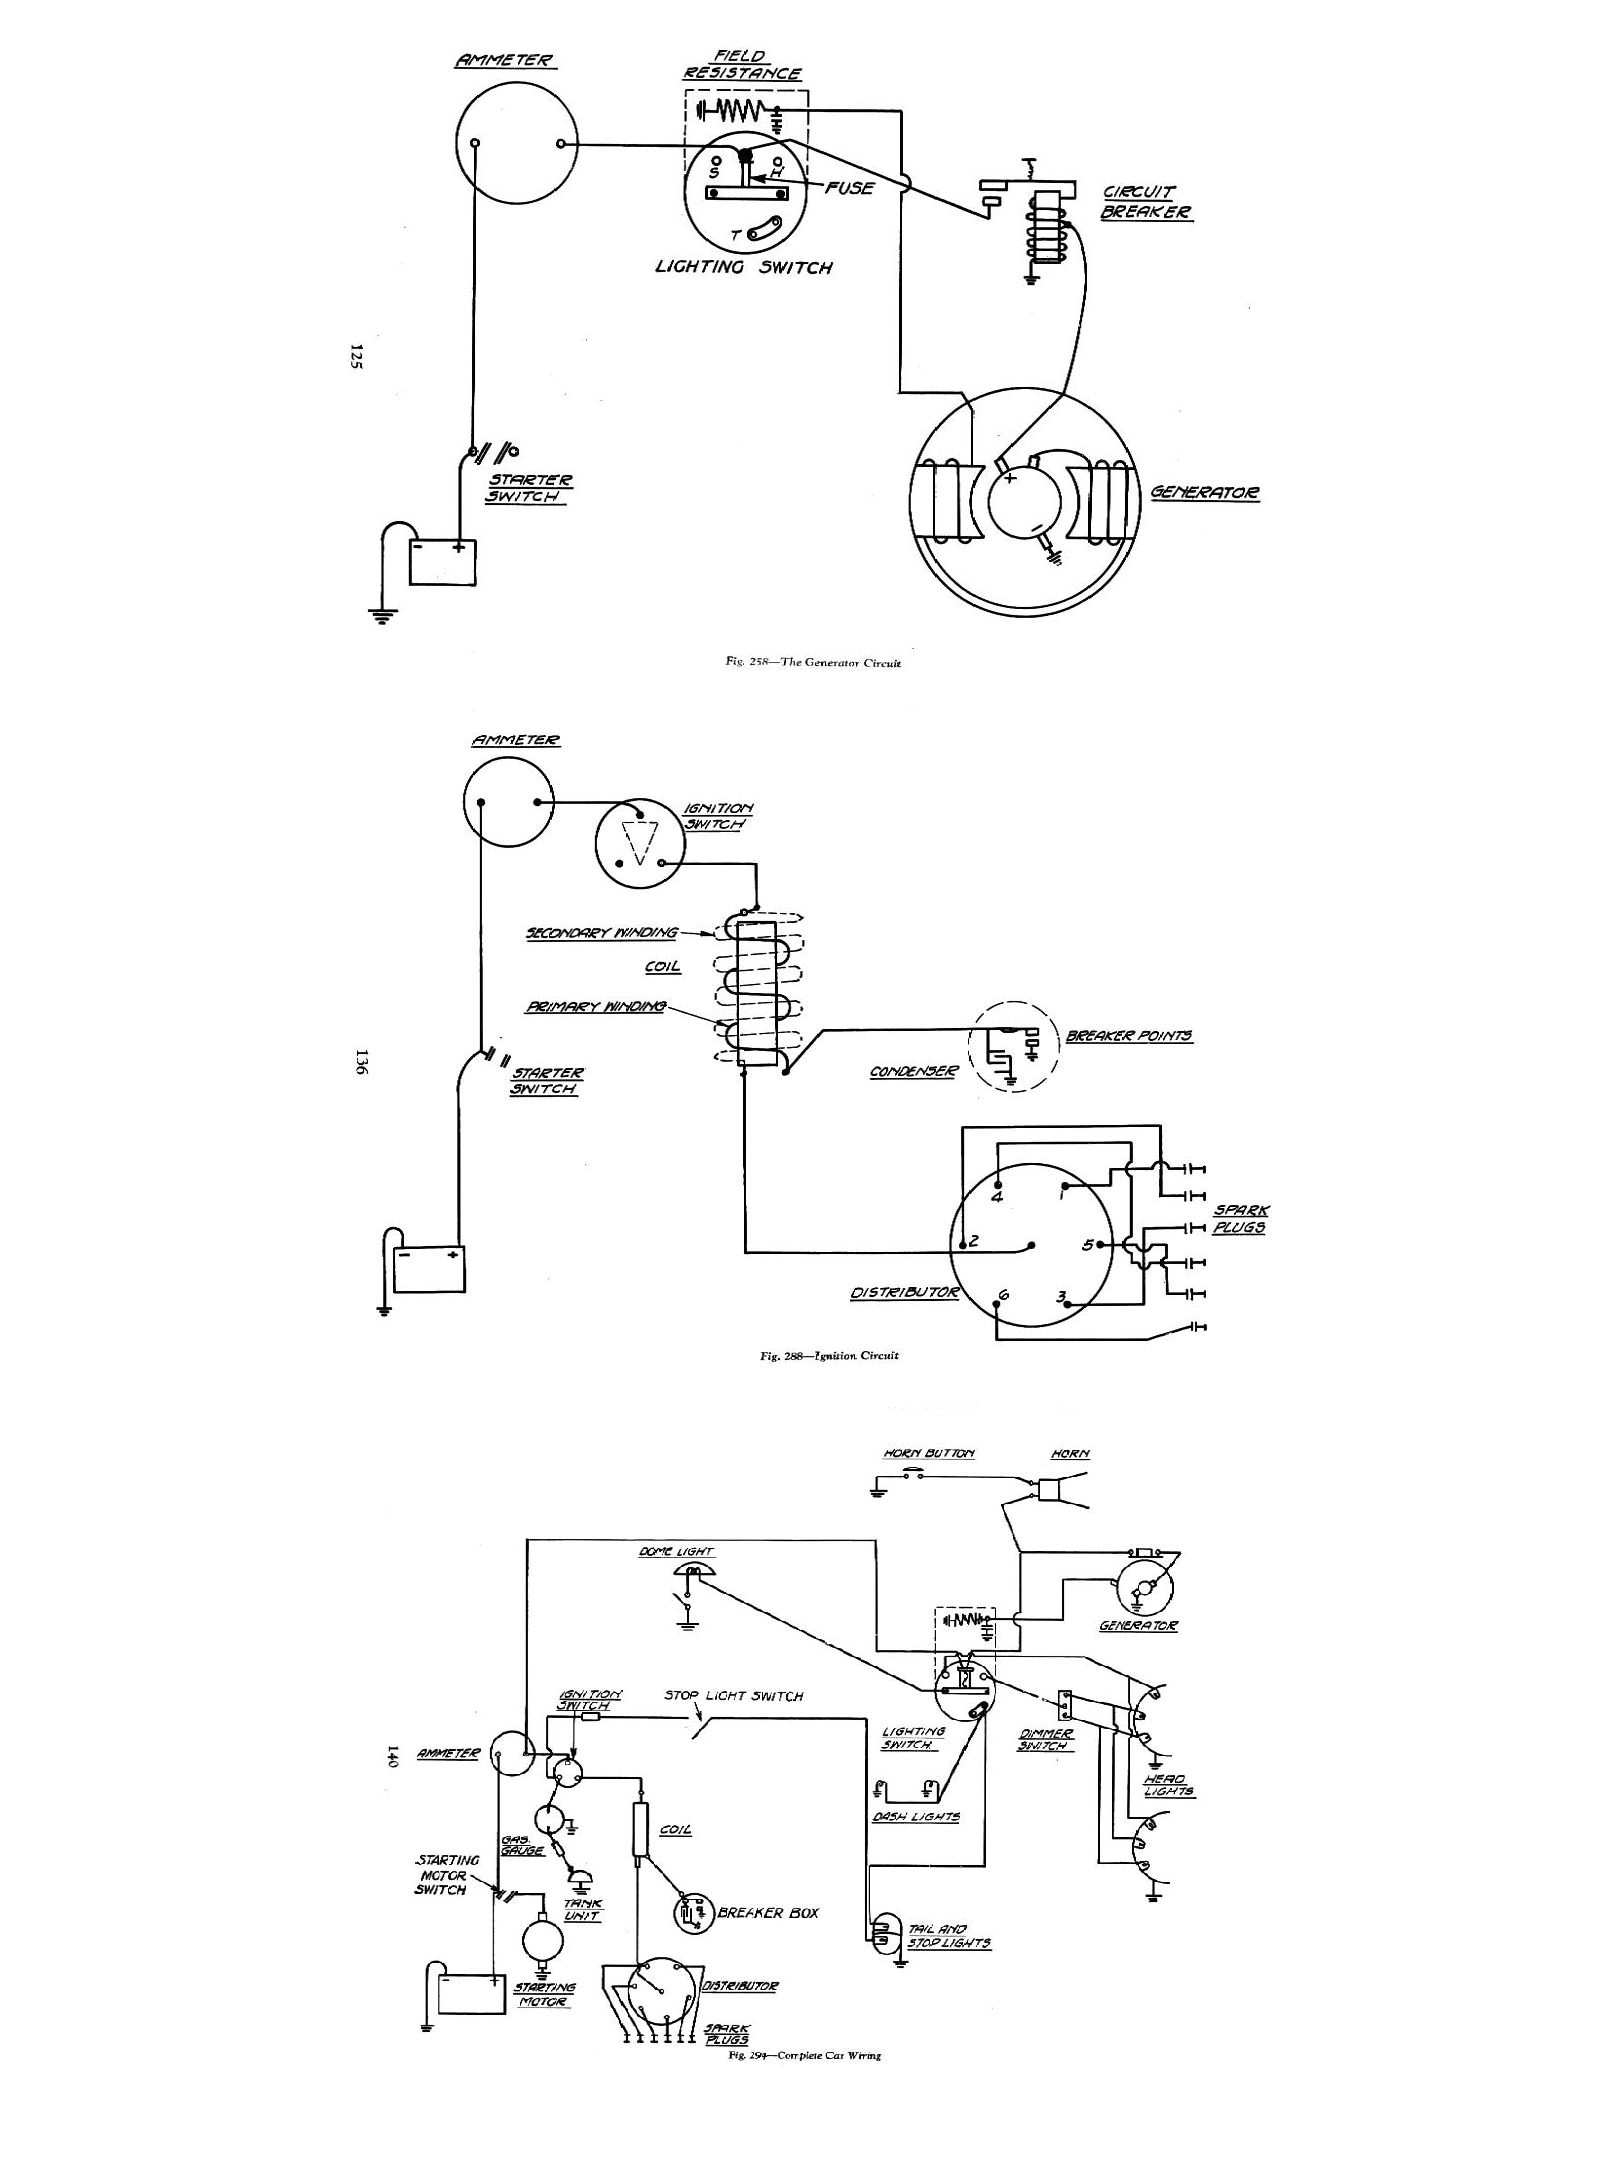 Farmall 140 12 Volt Wiring Diagram